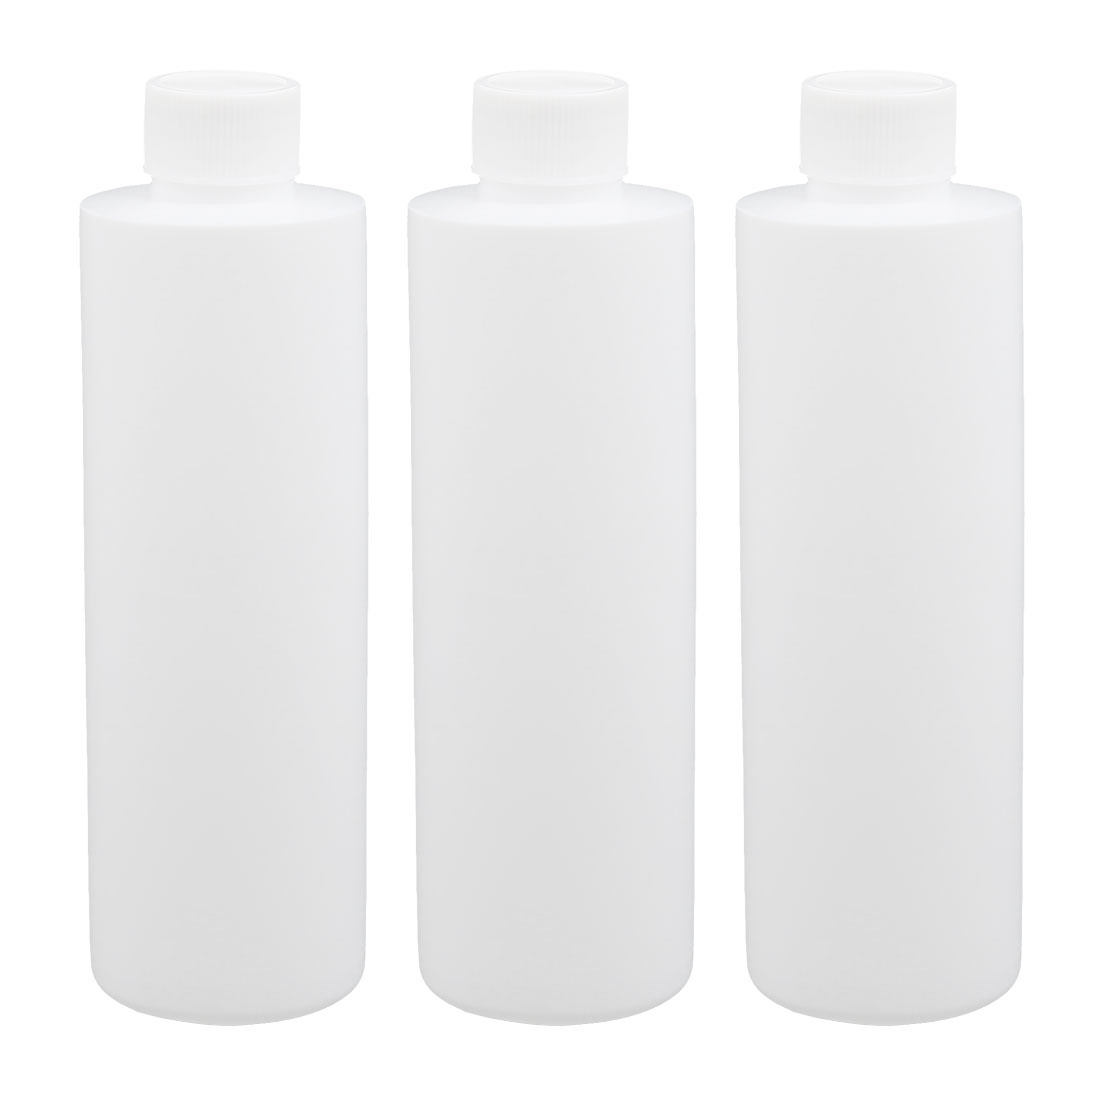 3pcs 6.8oz HDPE Plastic White Refillable Narrow Mouth Storage Bottle Jar